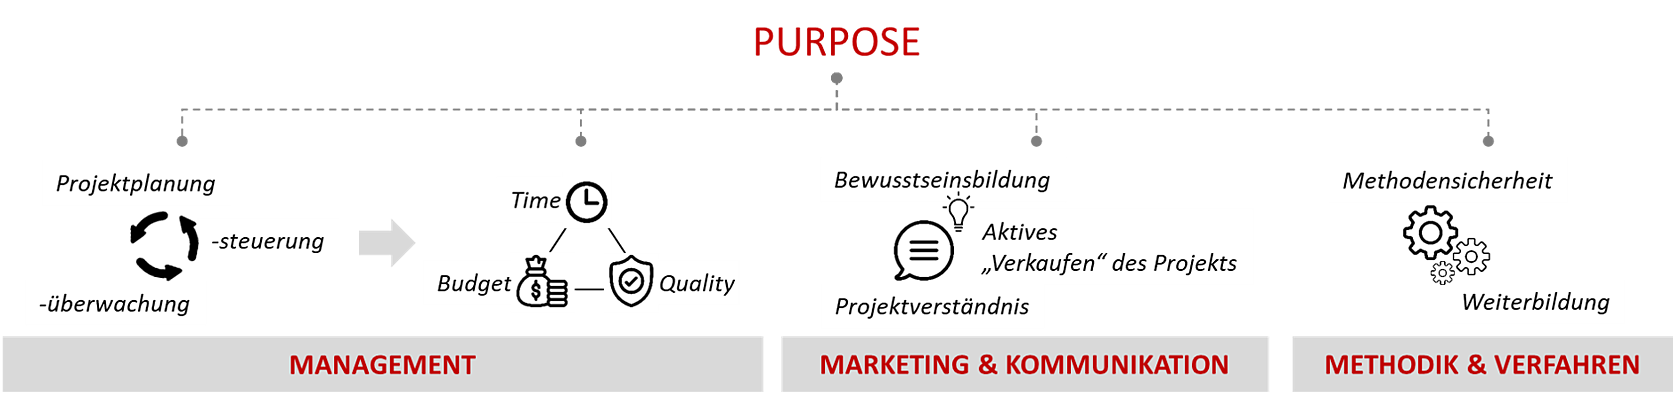 PDC - Projektmanagement - Purpose